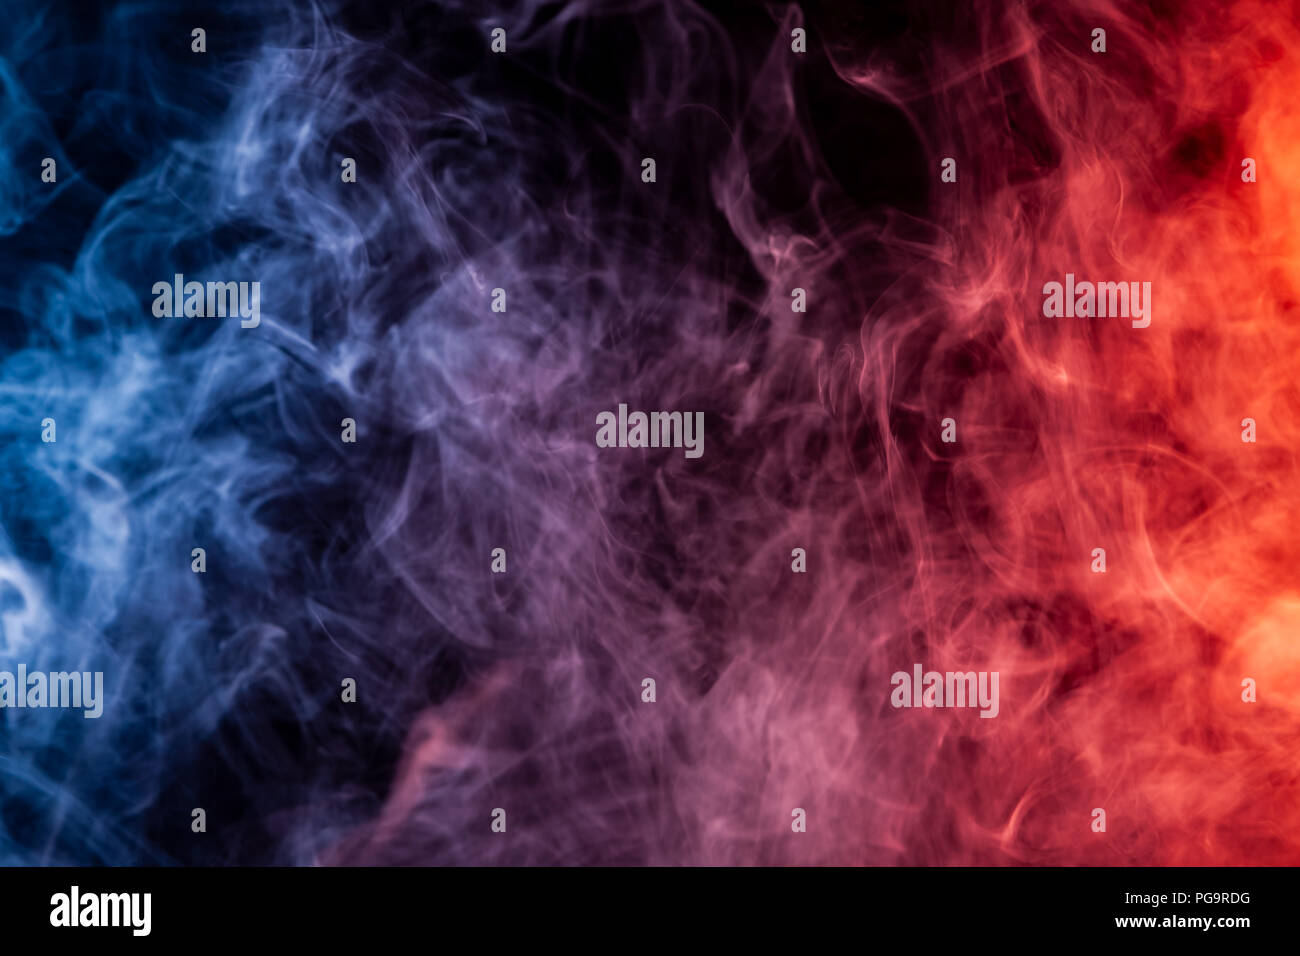 red blue and white smoke on black background stock photo alamy https www alamy com red blue and white smoke on black background image216574892 html